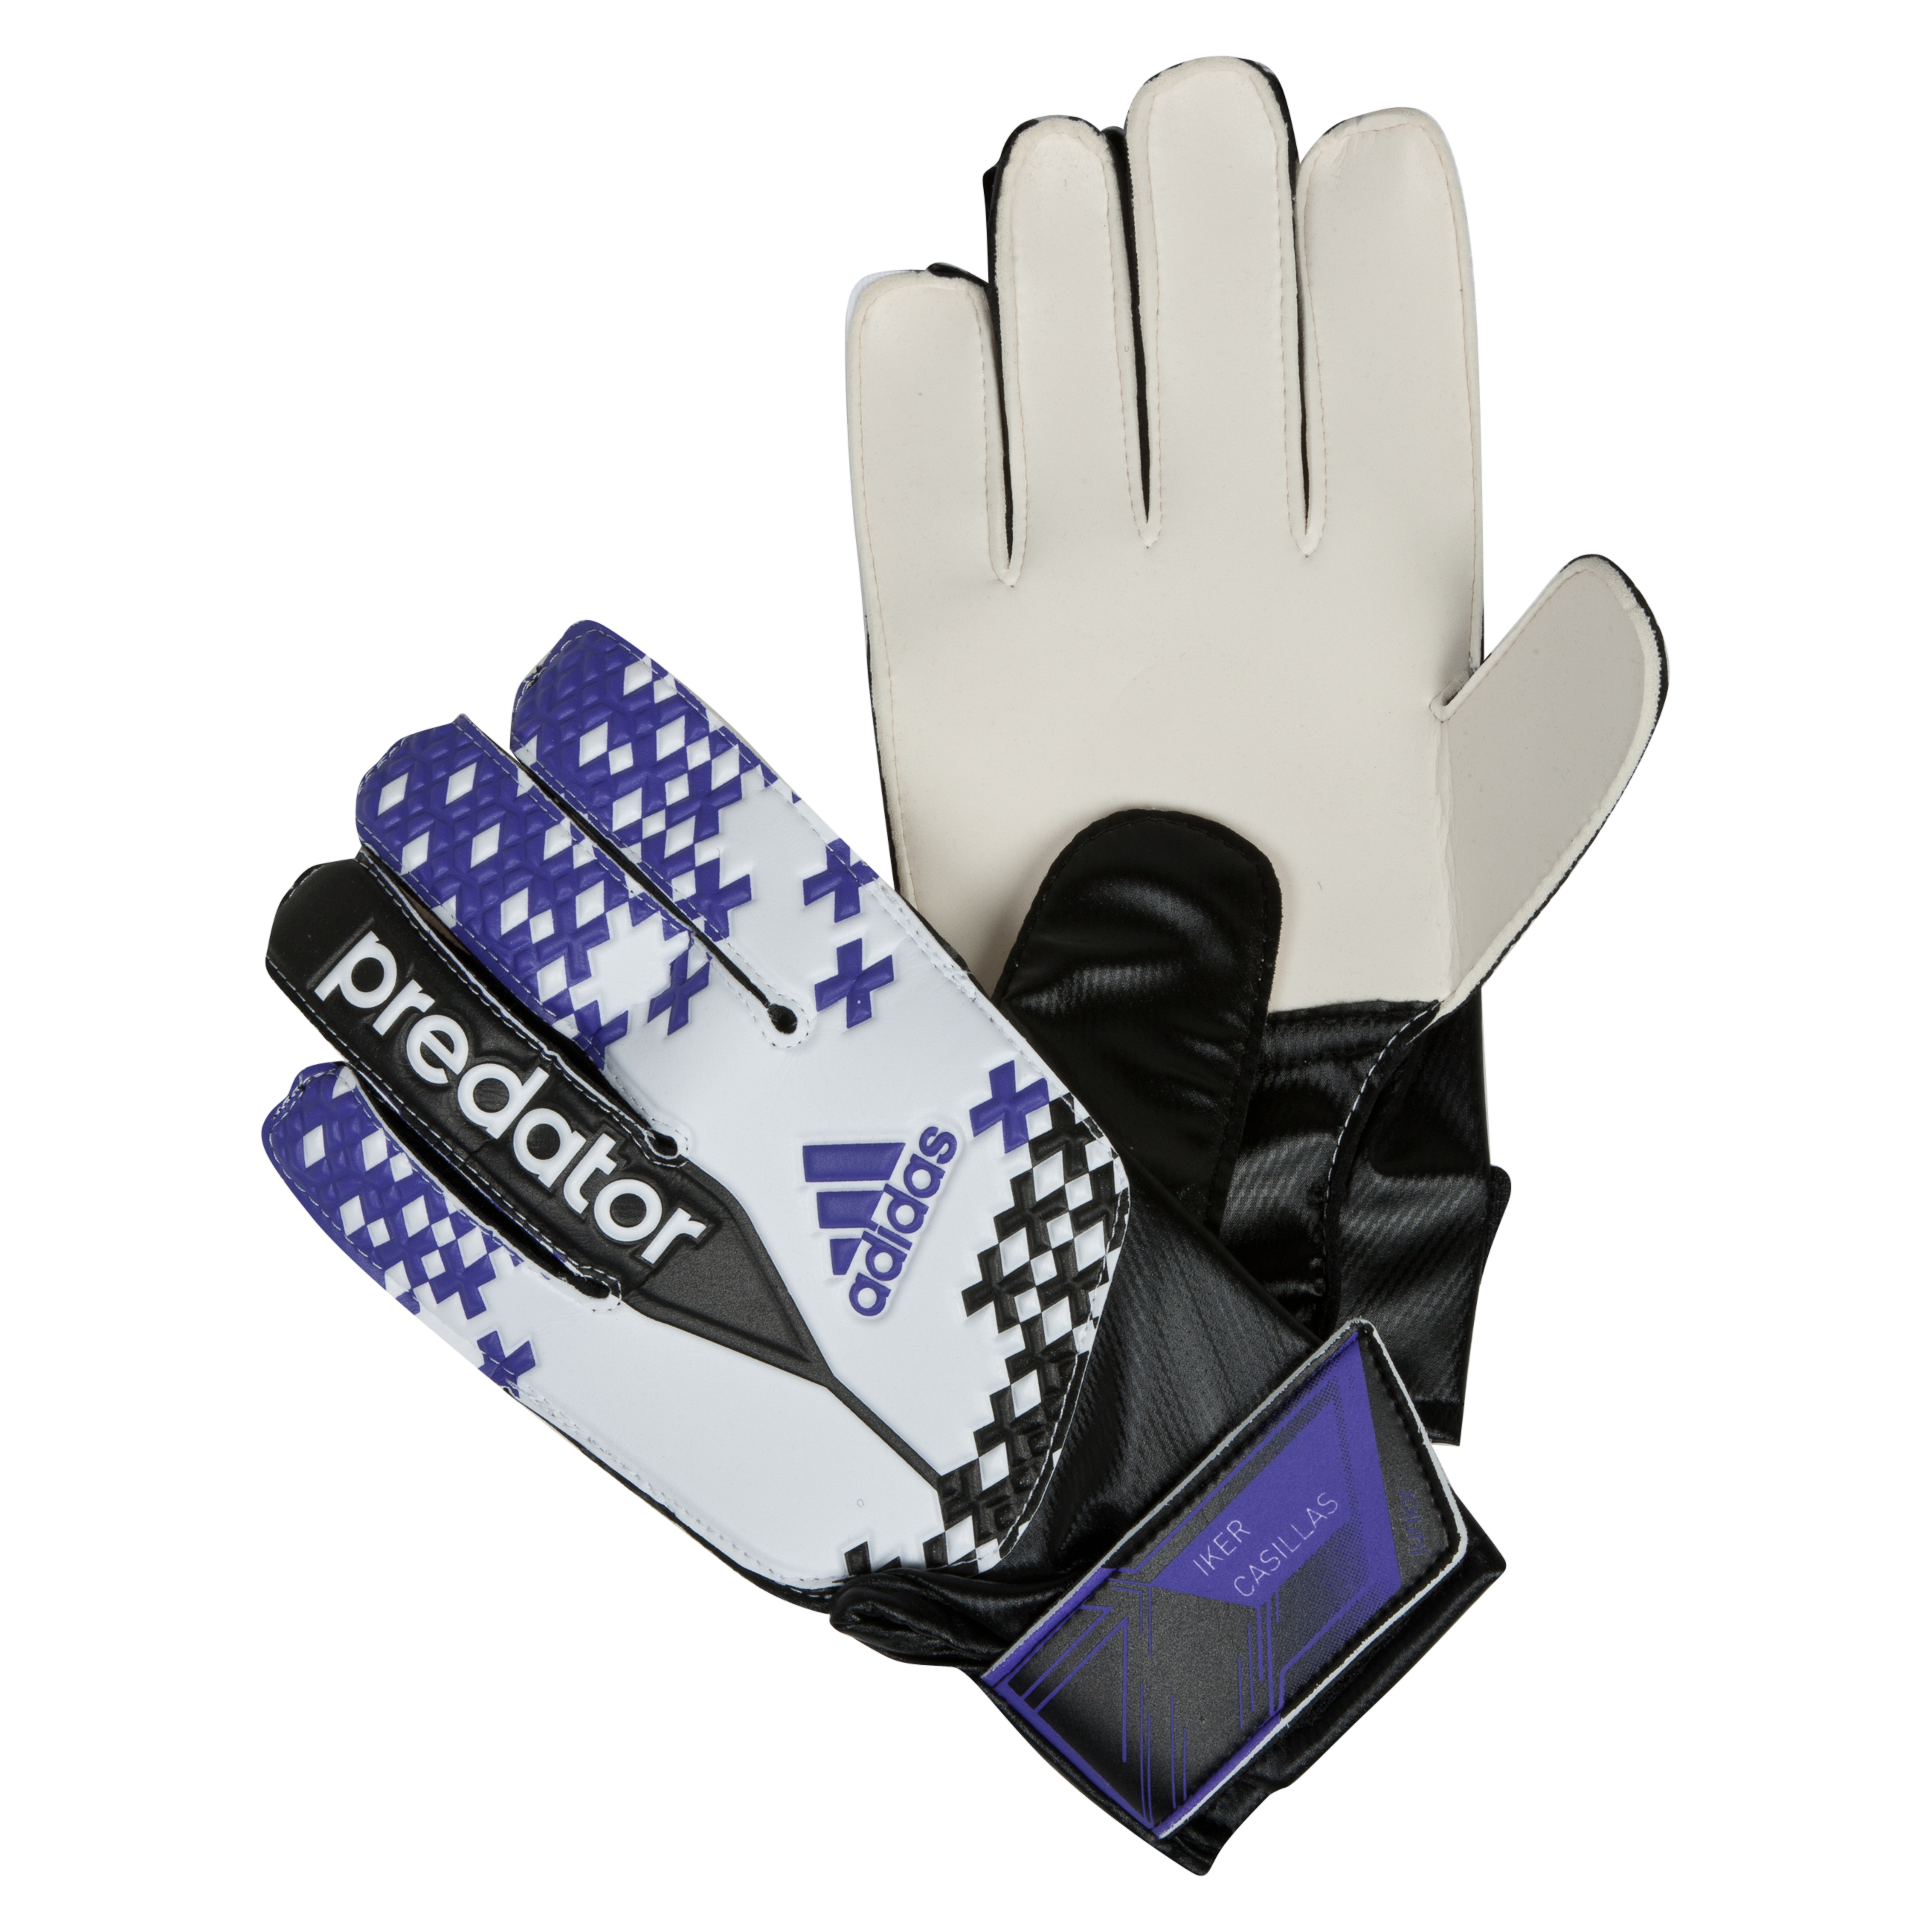 Adidas Predator Iker Casillas Goalkeeper Gloves White